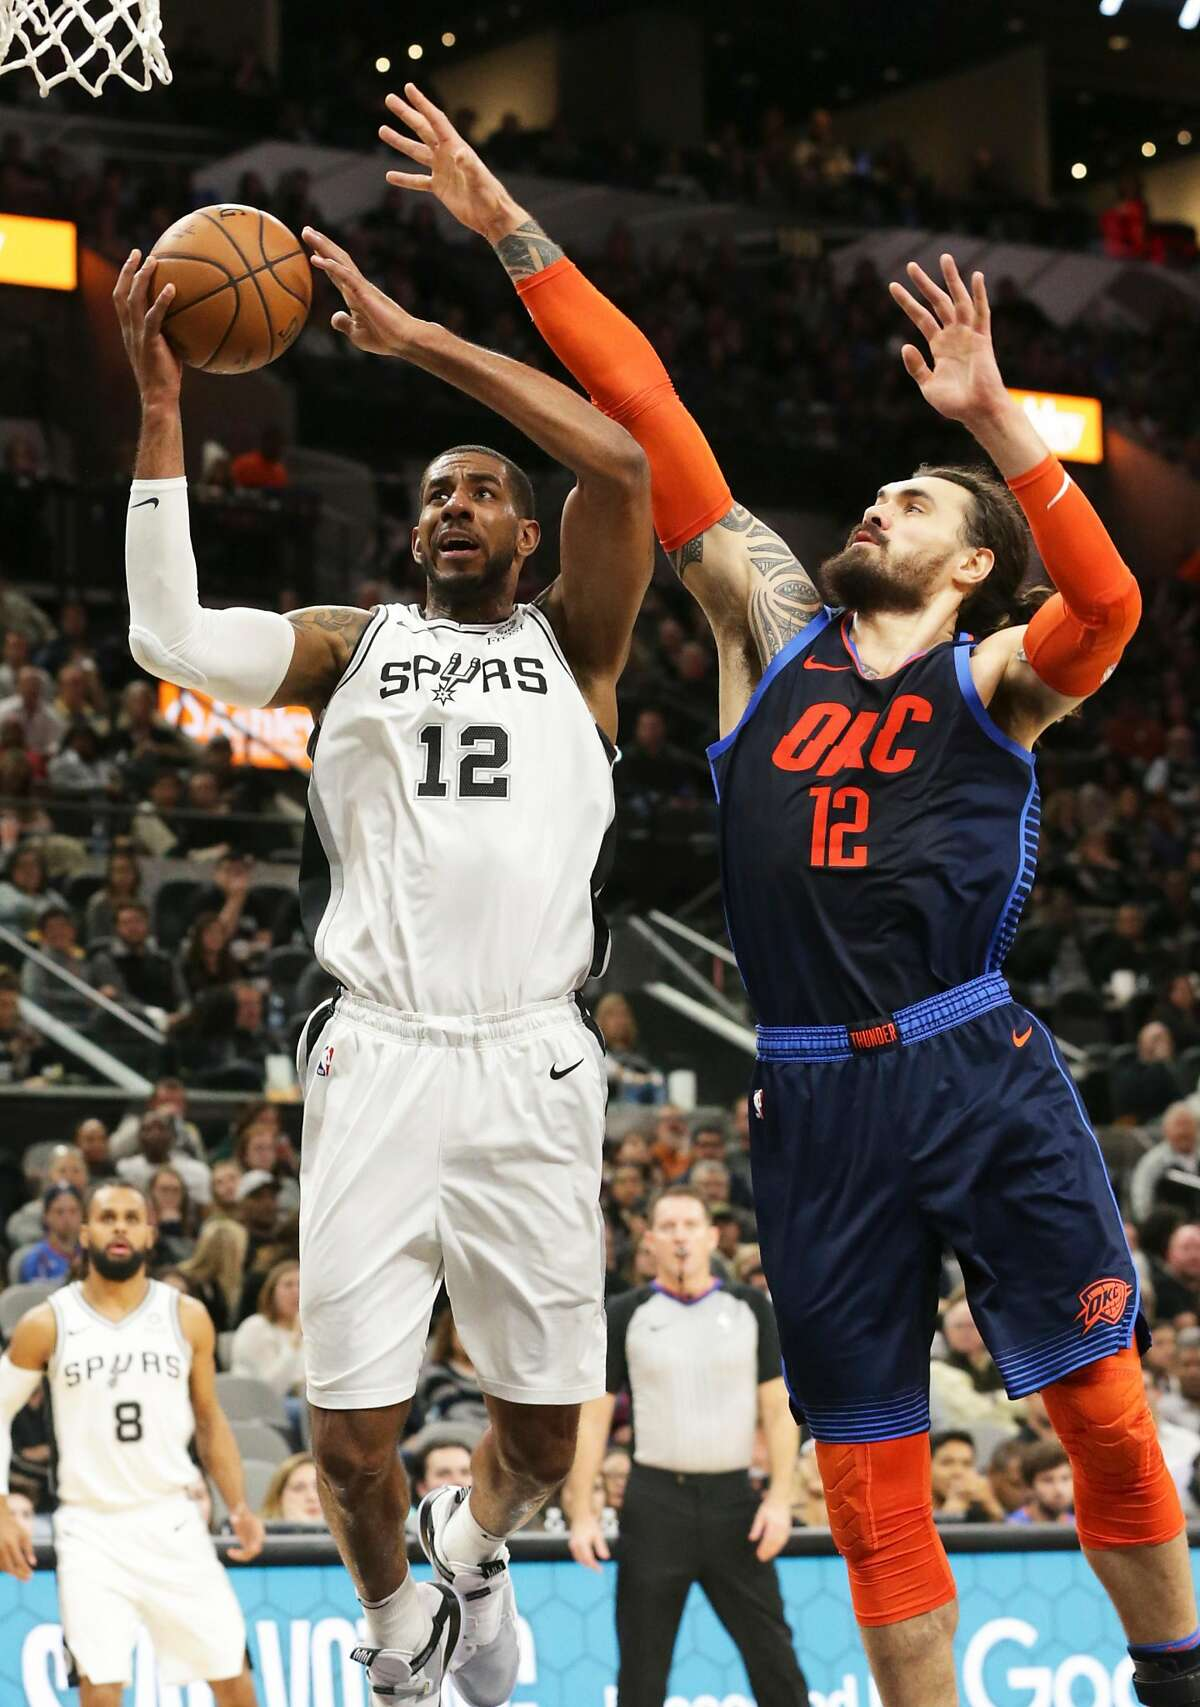 LaMarcus Aldridge lays a shot in over Steven Adams as the Spurs host Oklahoma at the AT&T Center on January 10, 2019.